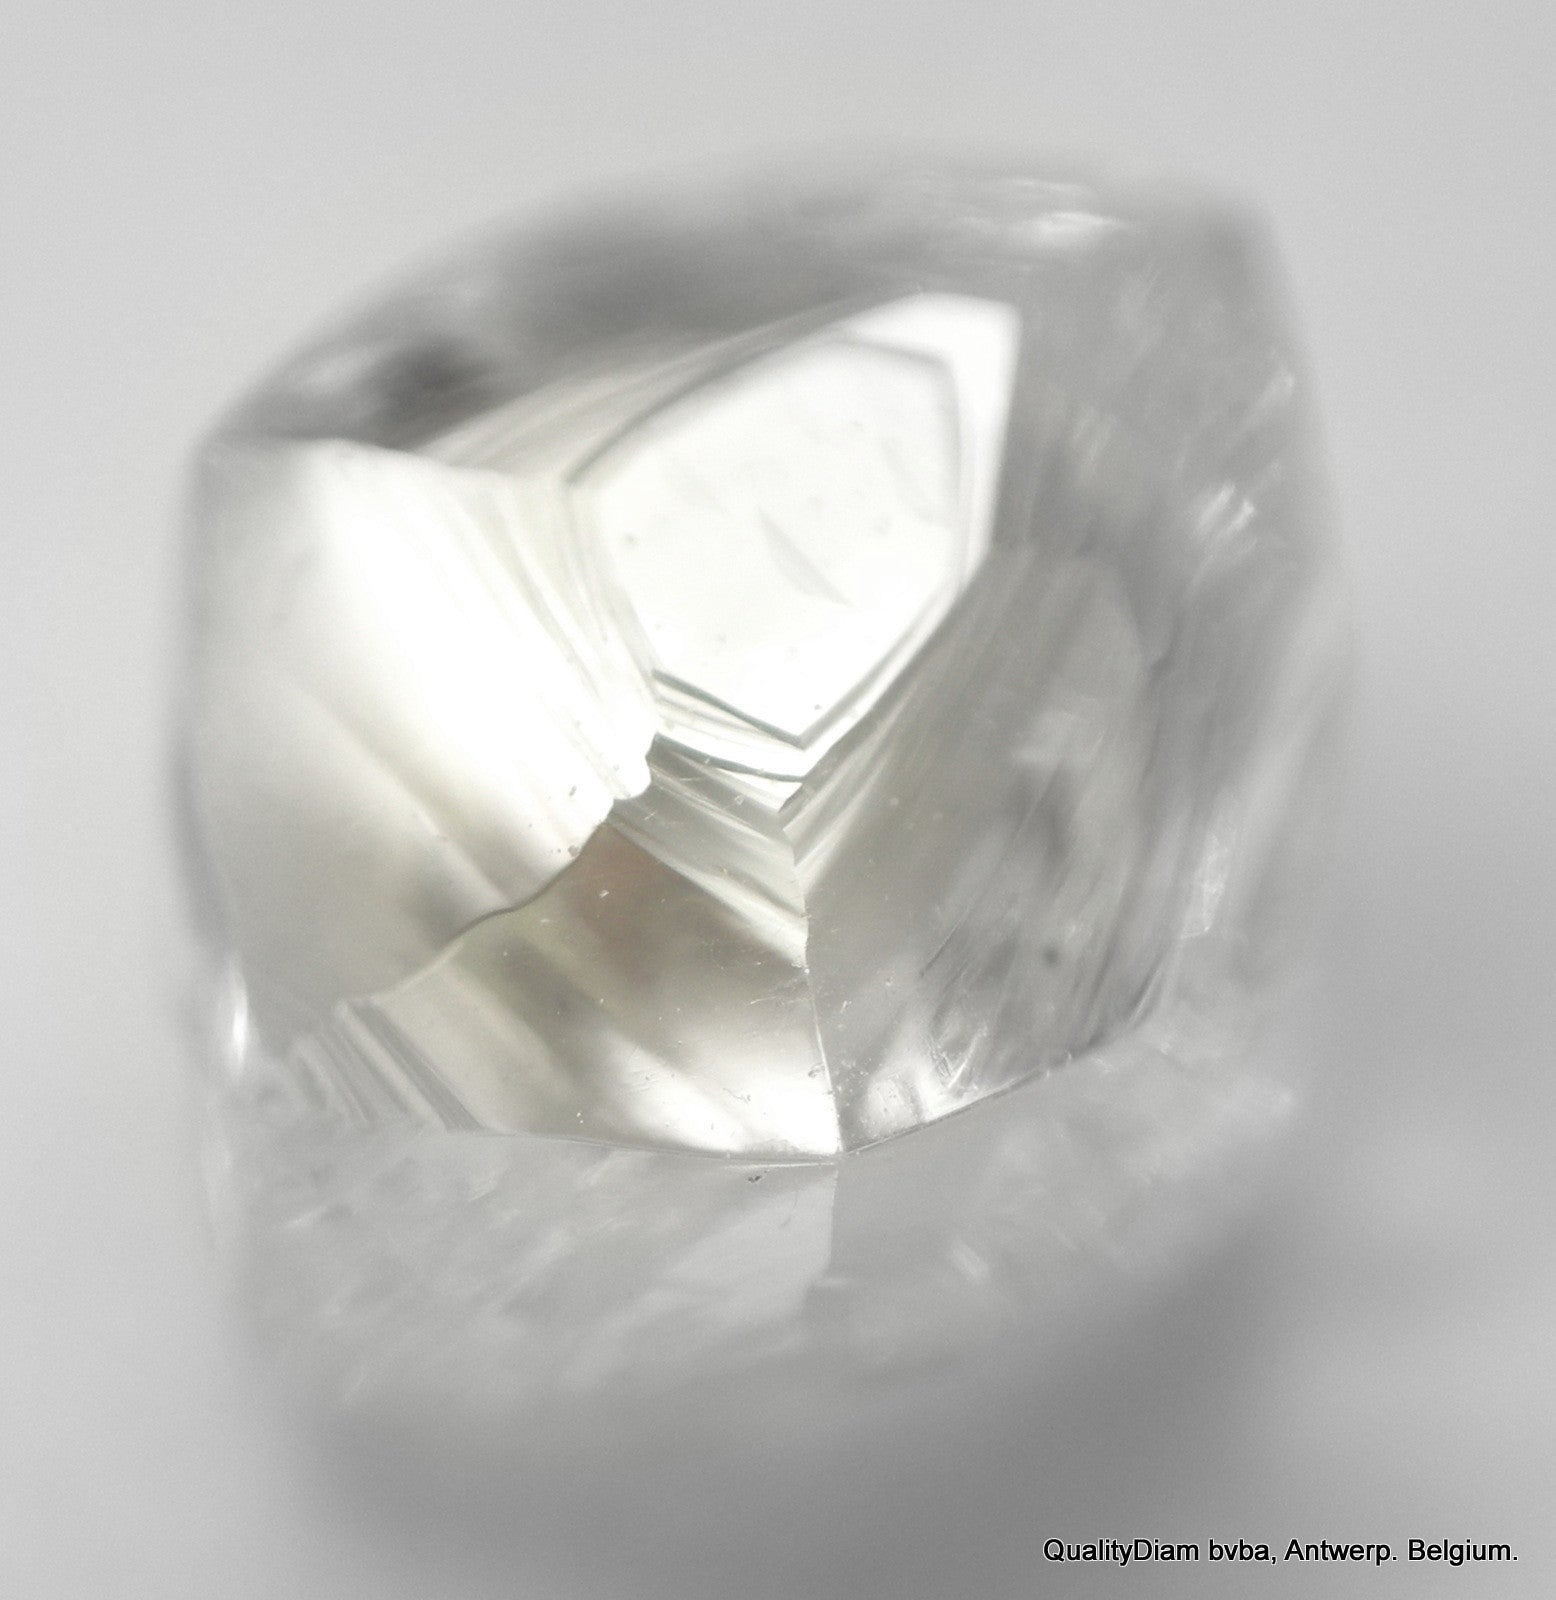 H VS1 0.69 CARAT Precious Natural Diamond in Octahedral shape with High Clarity